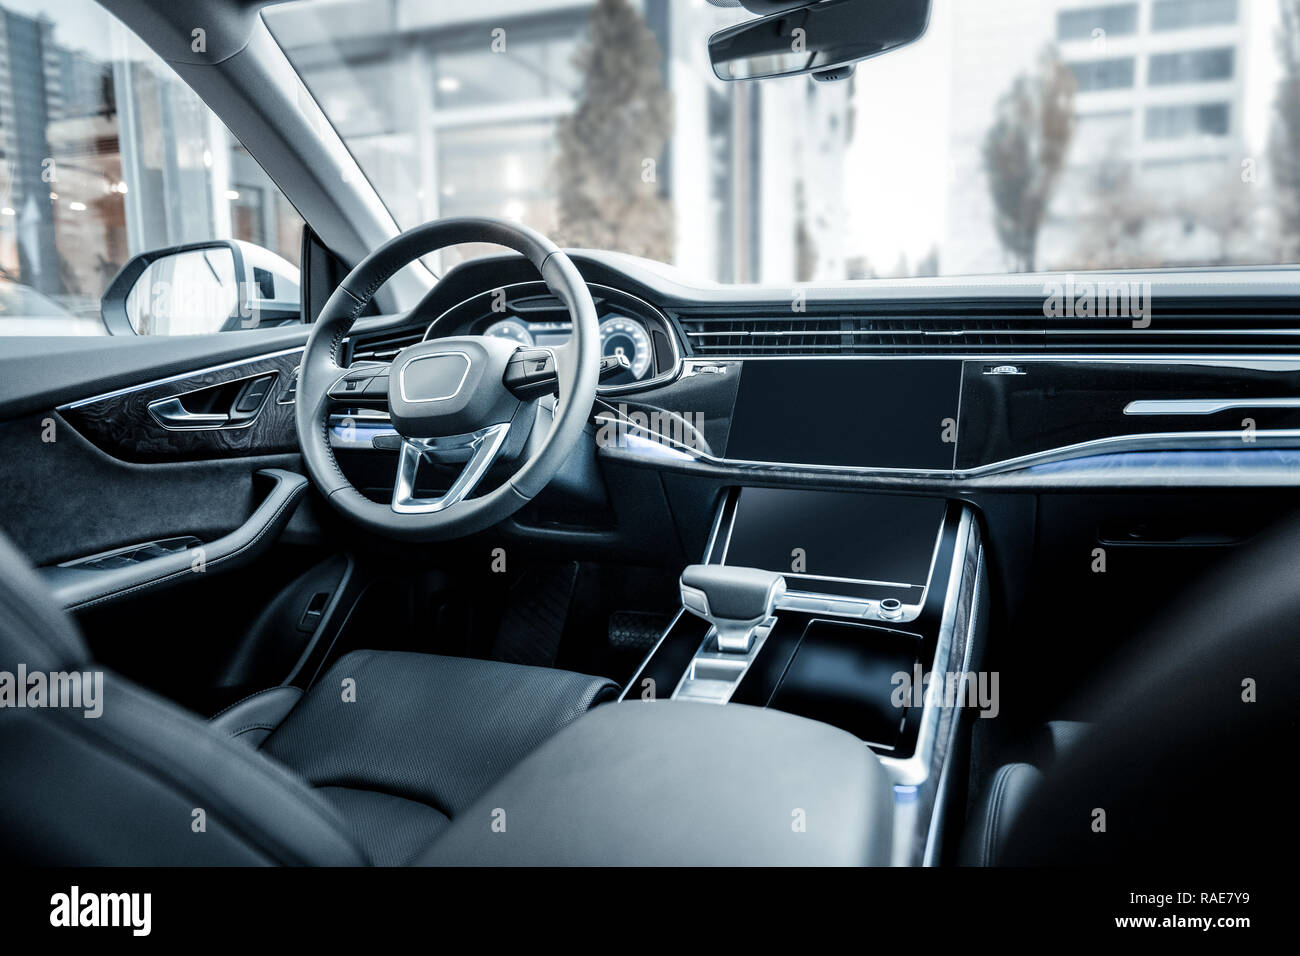 Modern passenger car with black leather interior standing outside - Stock Image